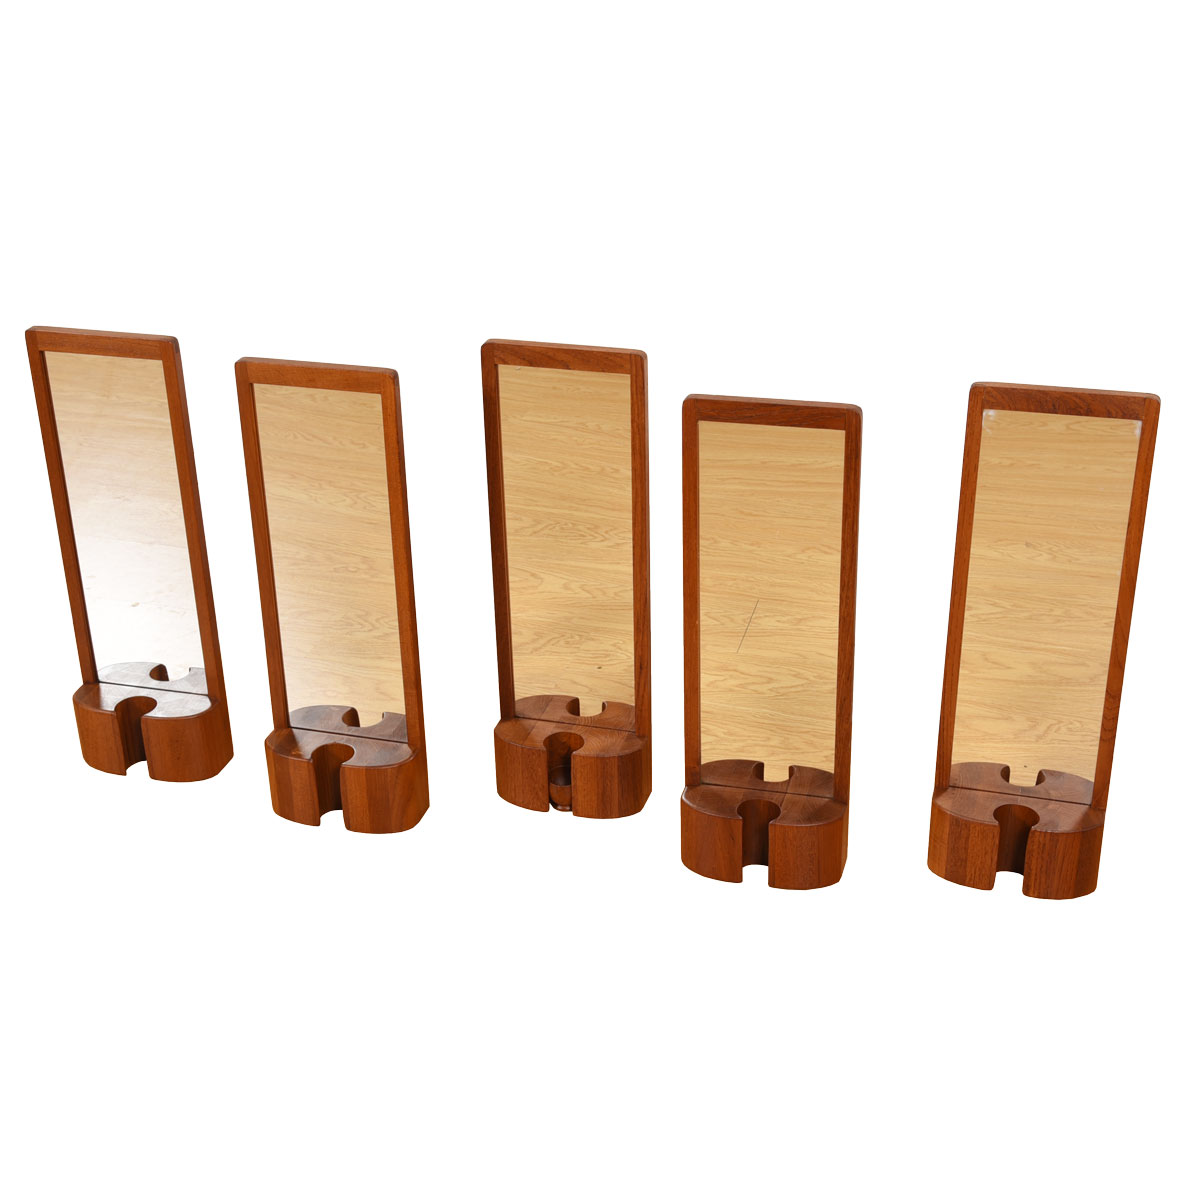 Slim Danish Modern Teak Mirror with Vase Holder